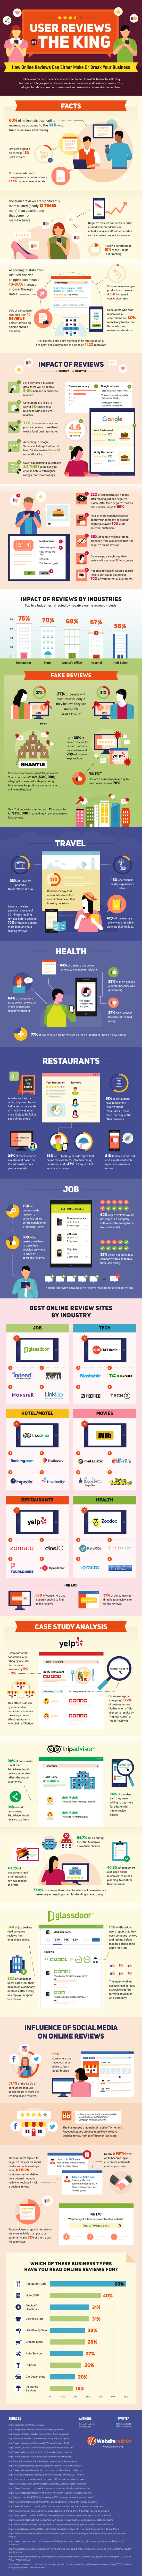 Online Review Statistics Infographic